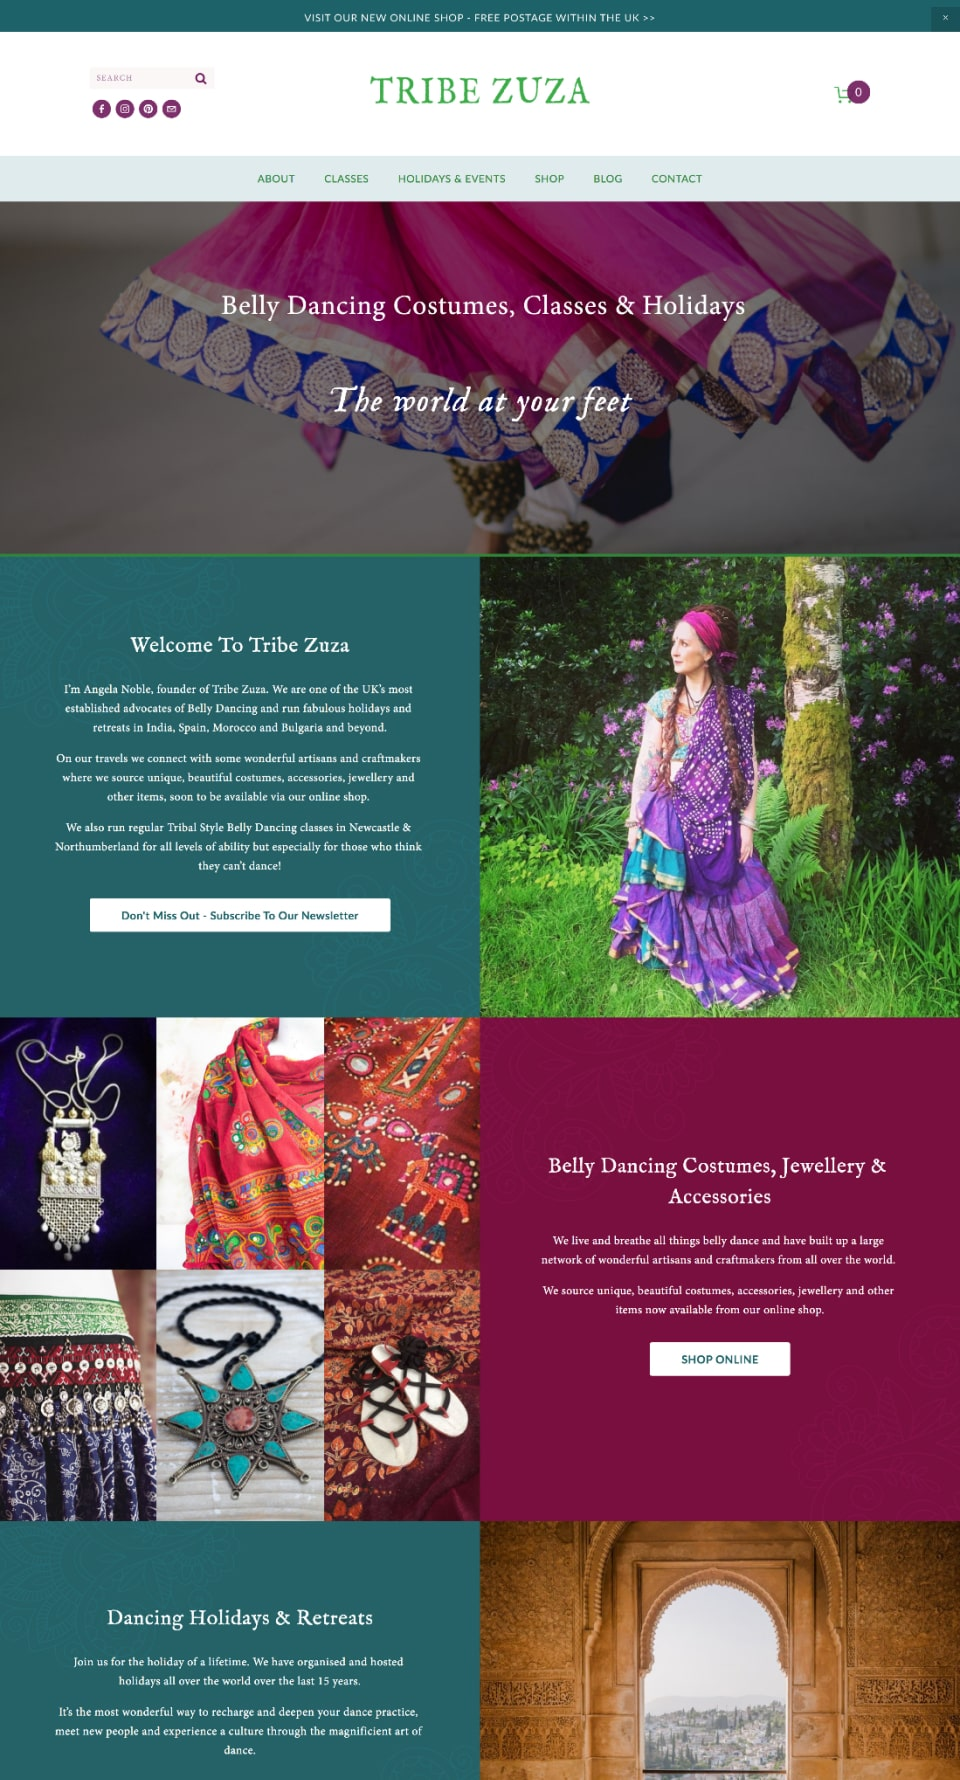 Tribe Zuza Website  Home Page